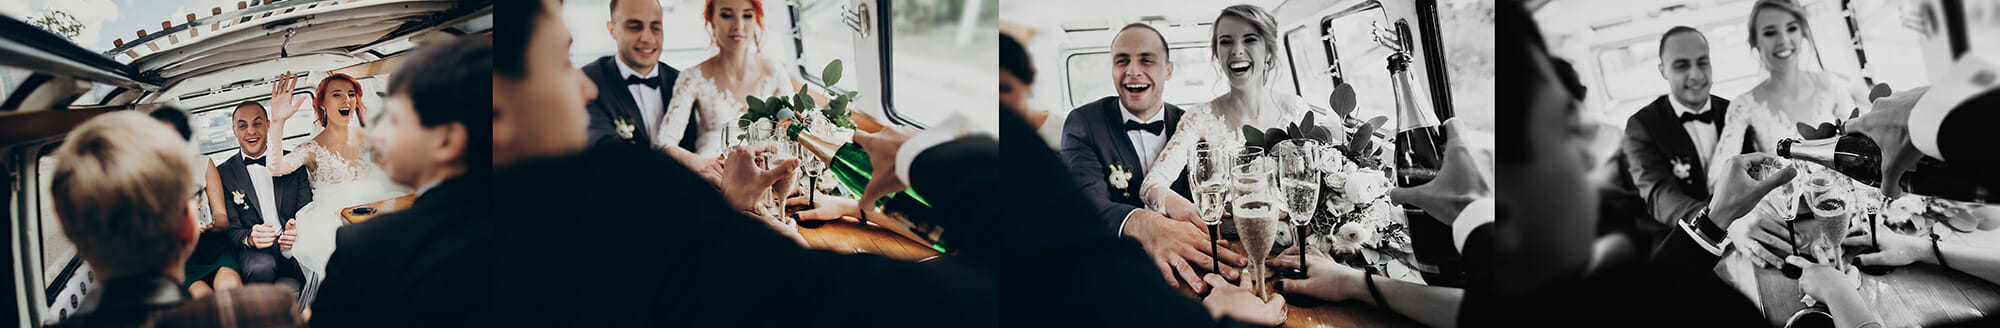 photographing newlyweds tips